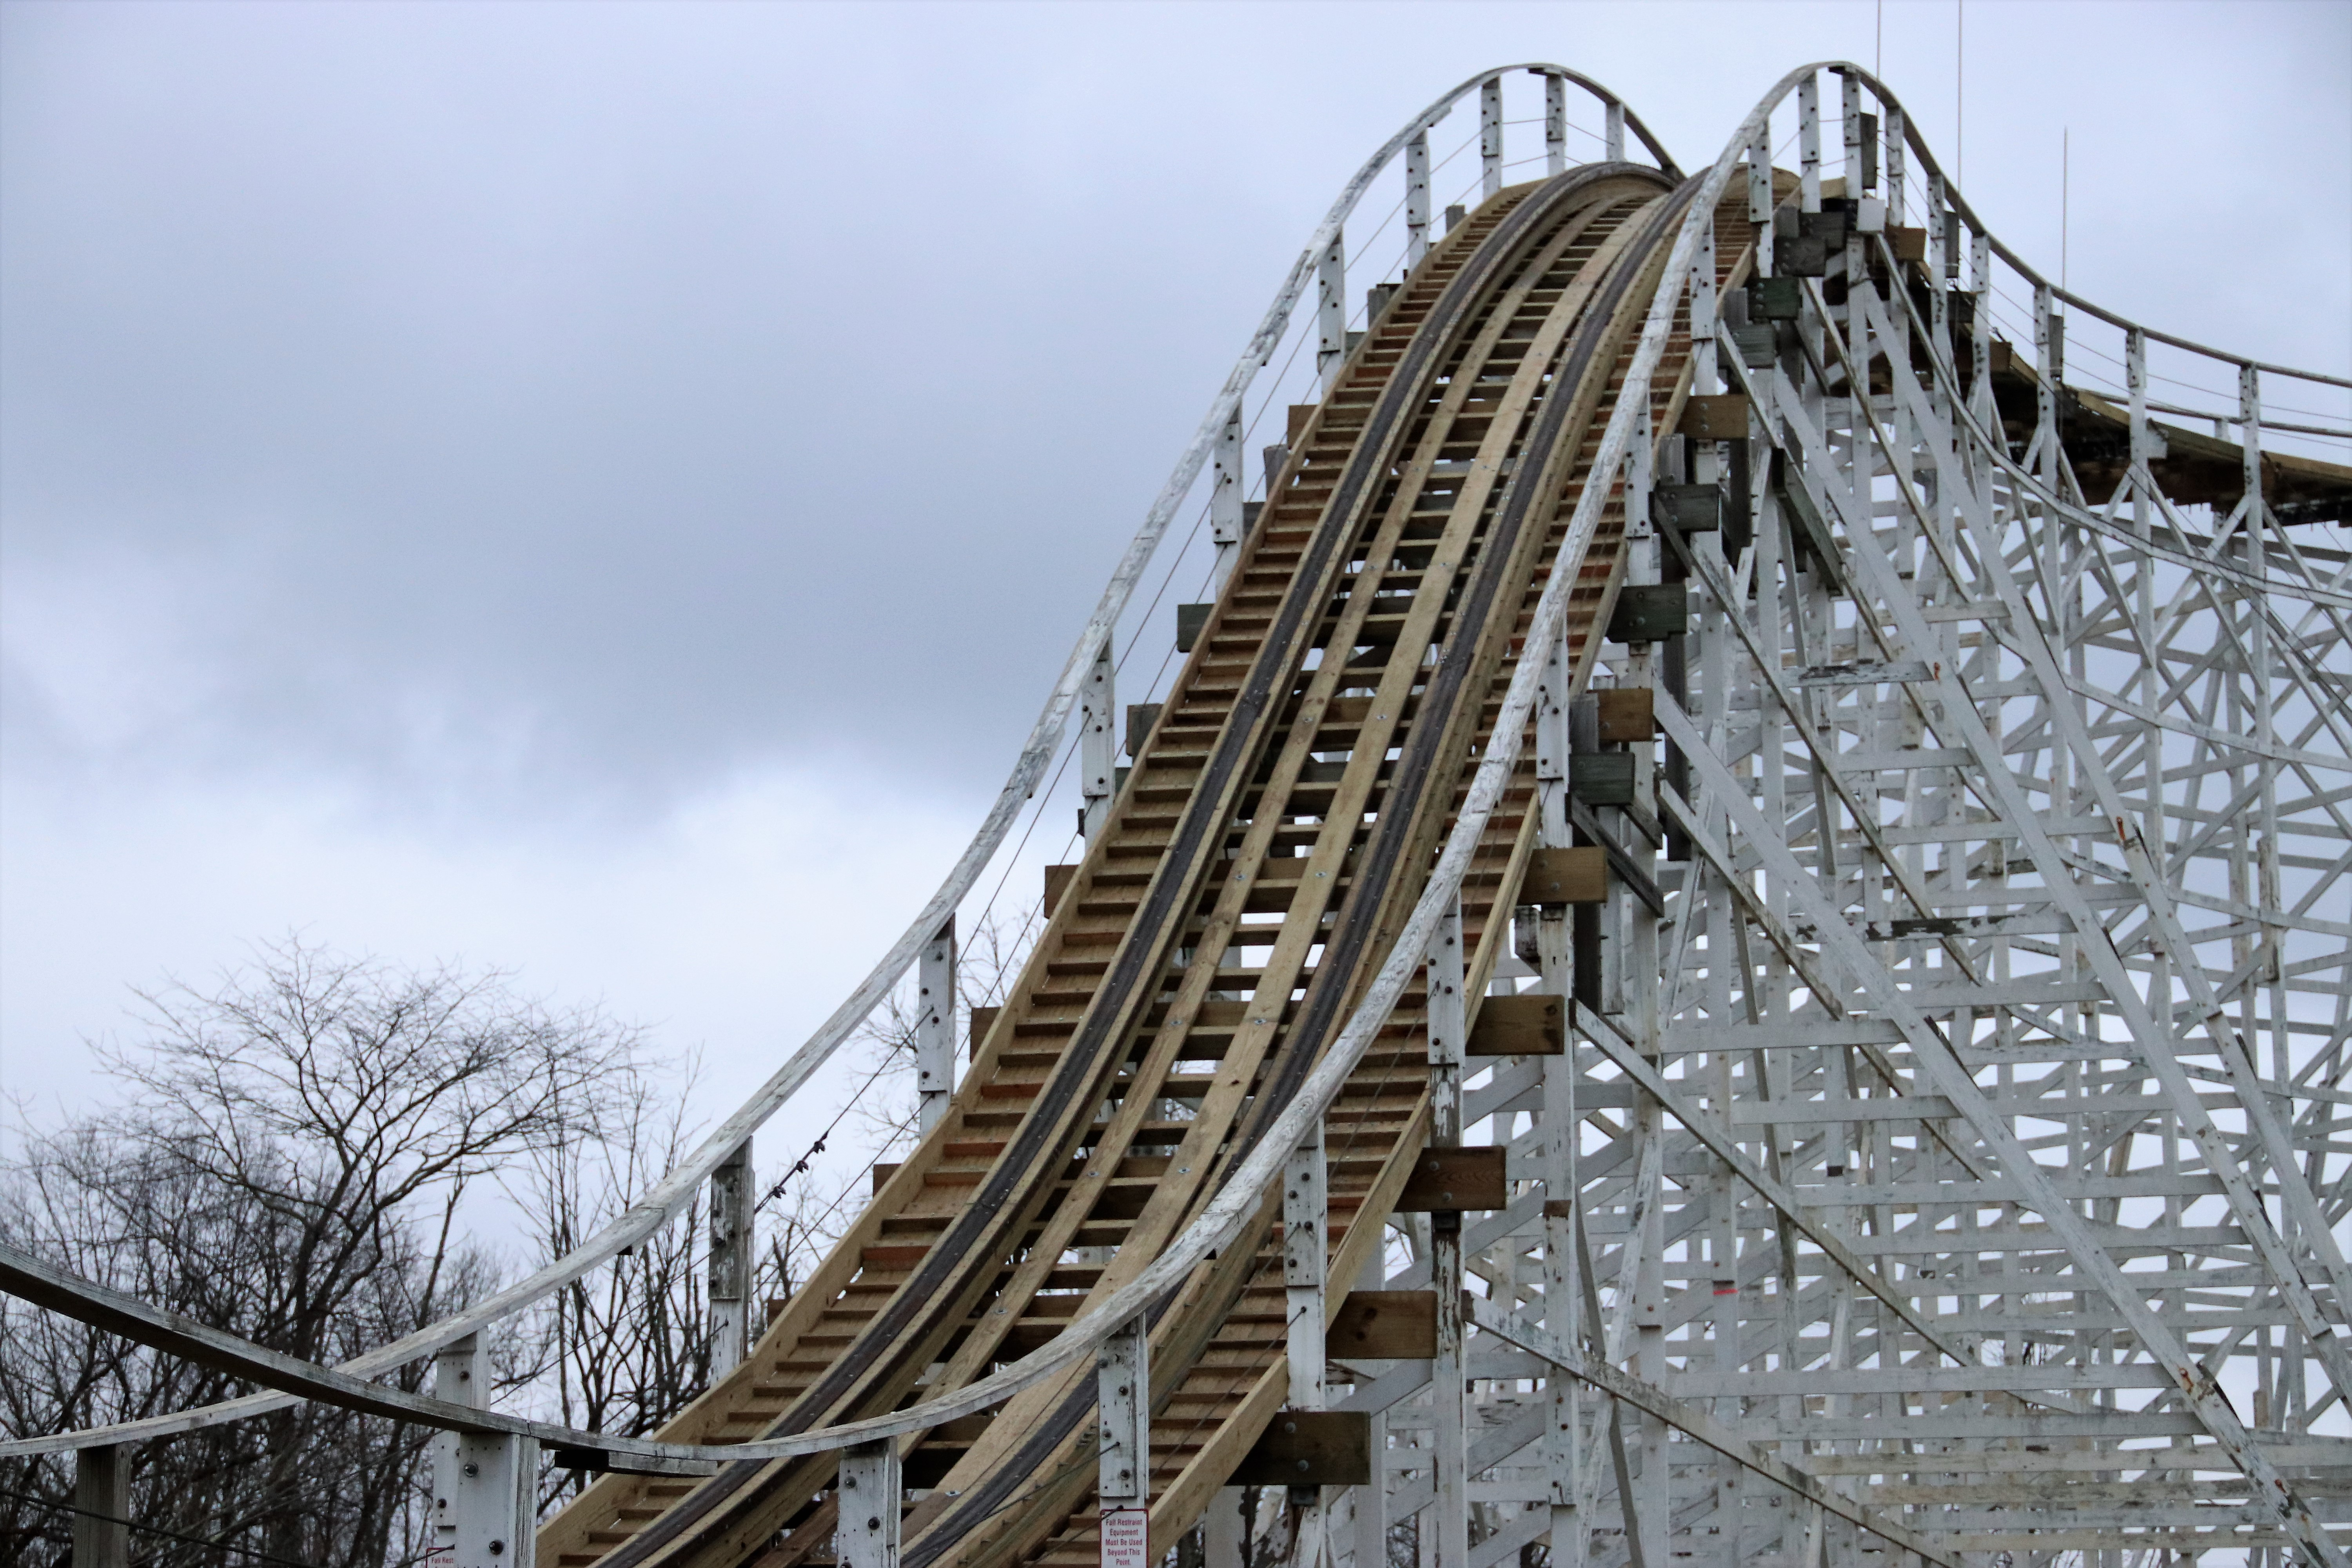 Kings Island Racer coaster getting new track, smoother ride